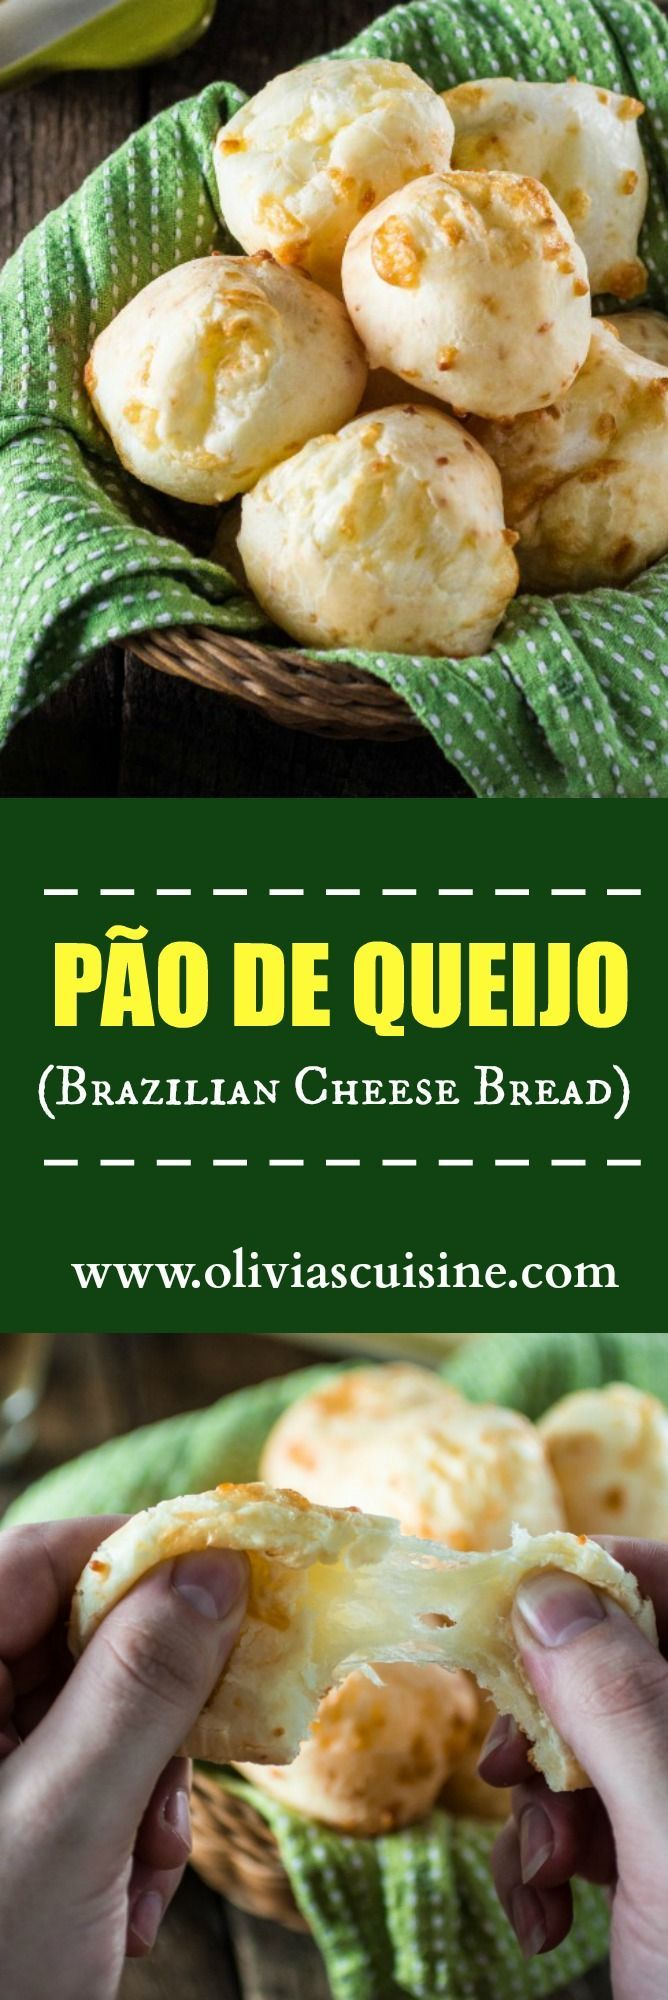 Authentic Brazilian Cheese Bread (Pão de Queijo) | http://www.oliviascuisine.com | The most popular Brazilian snack is gluten free and loaded with gooey cheese. You'll be hooked!